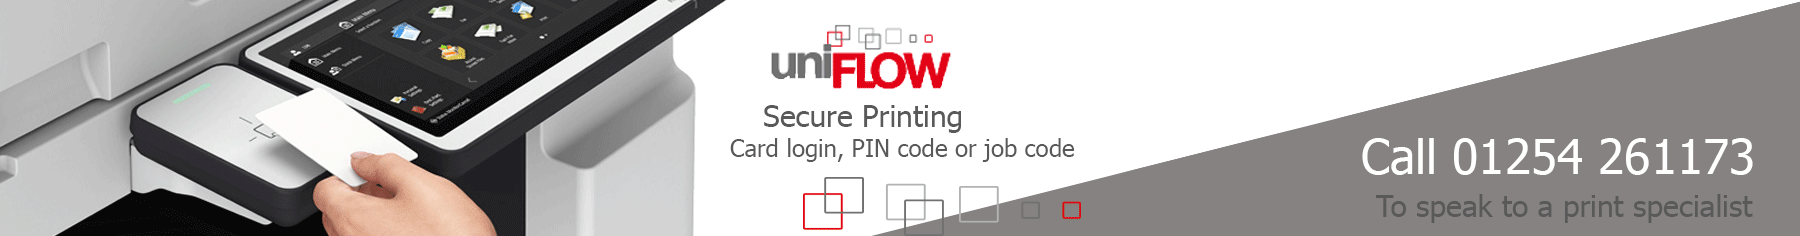 canon uniflow quotation